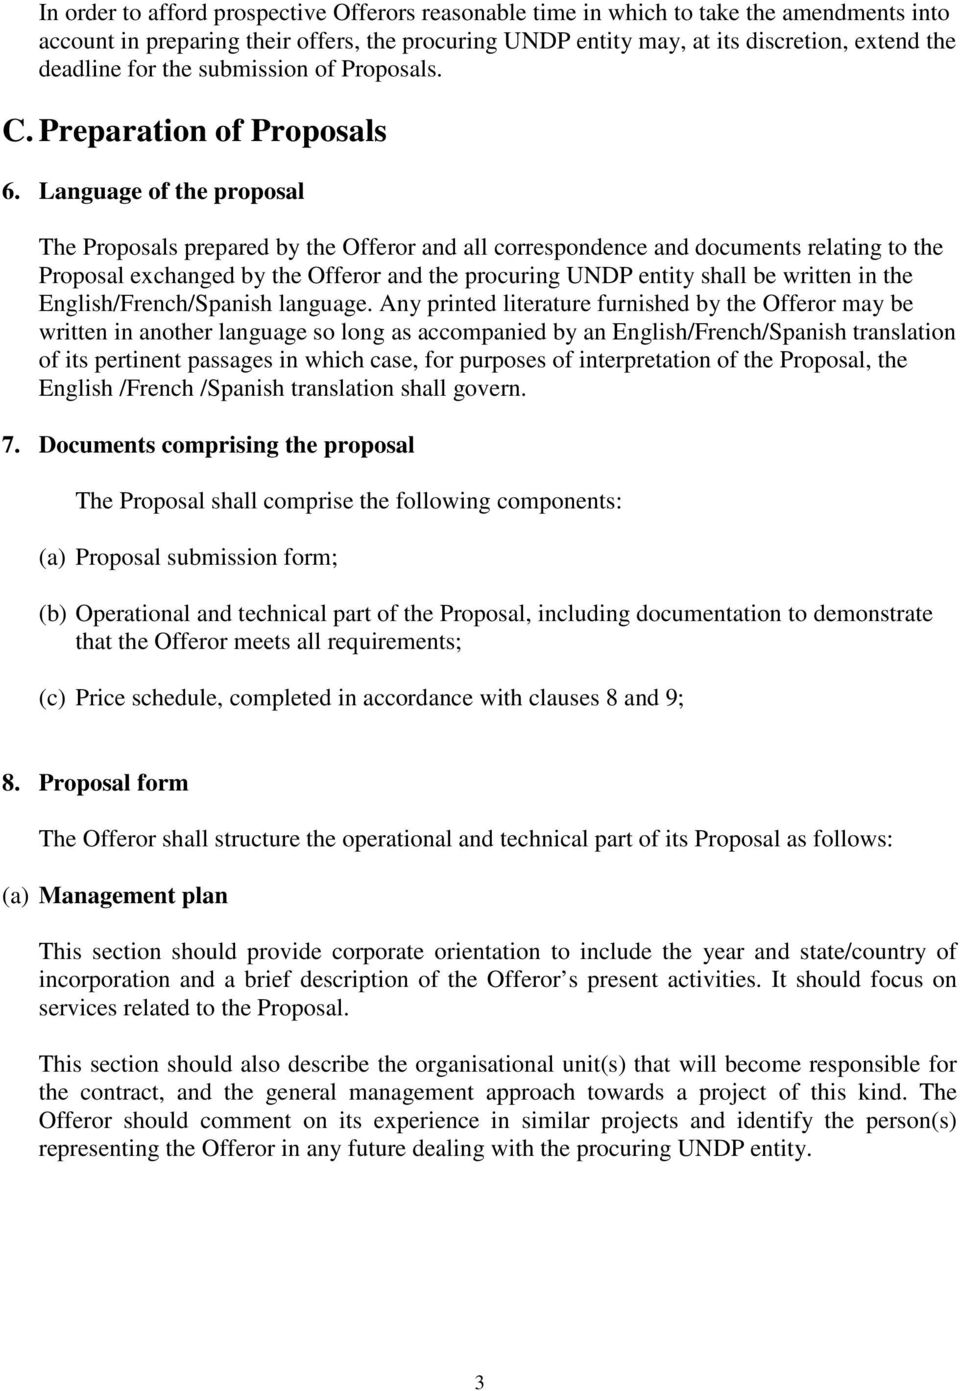 Language of the proposal The Proposals prepared by the Offeror and all correspondence and documents relating to the Proposal exchanged by the Offeror and the procuring UNDP entity shall be written in